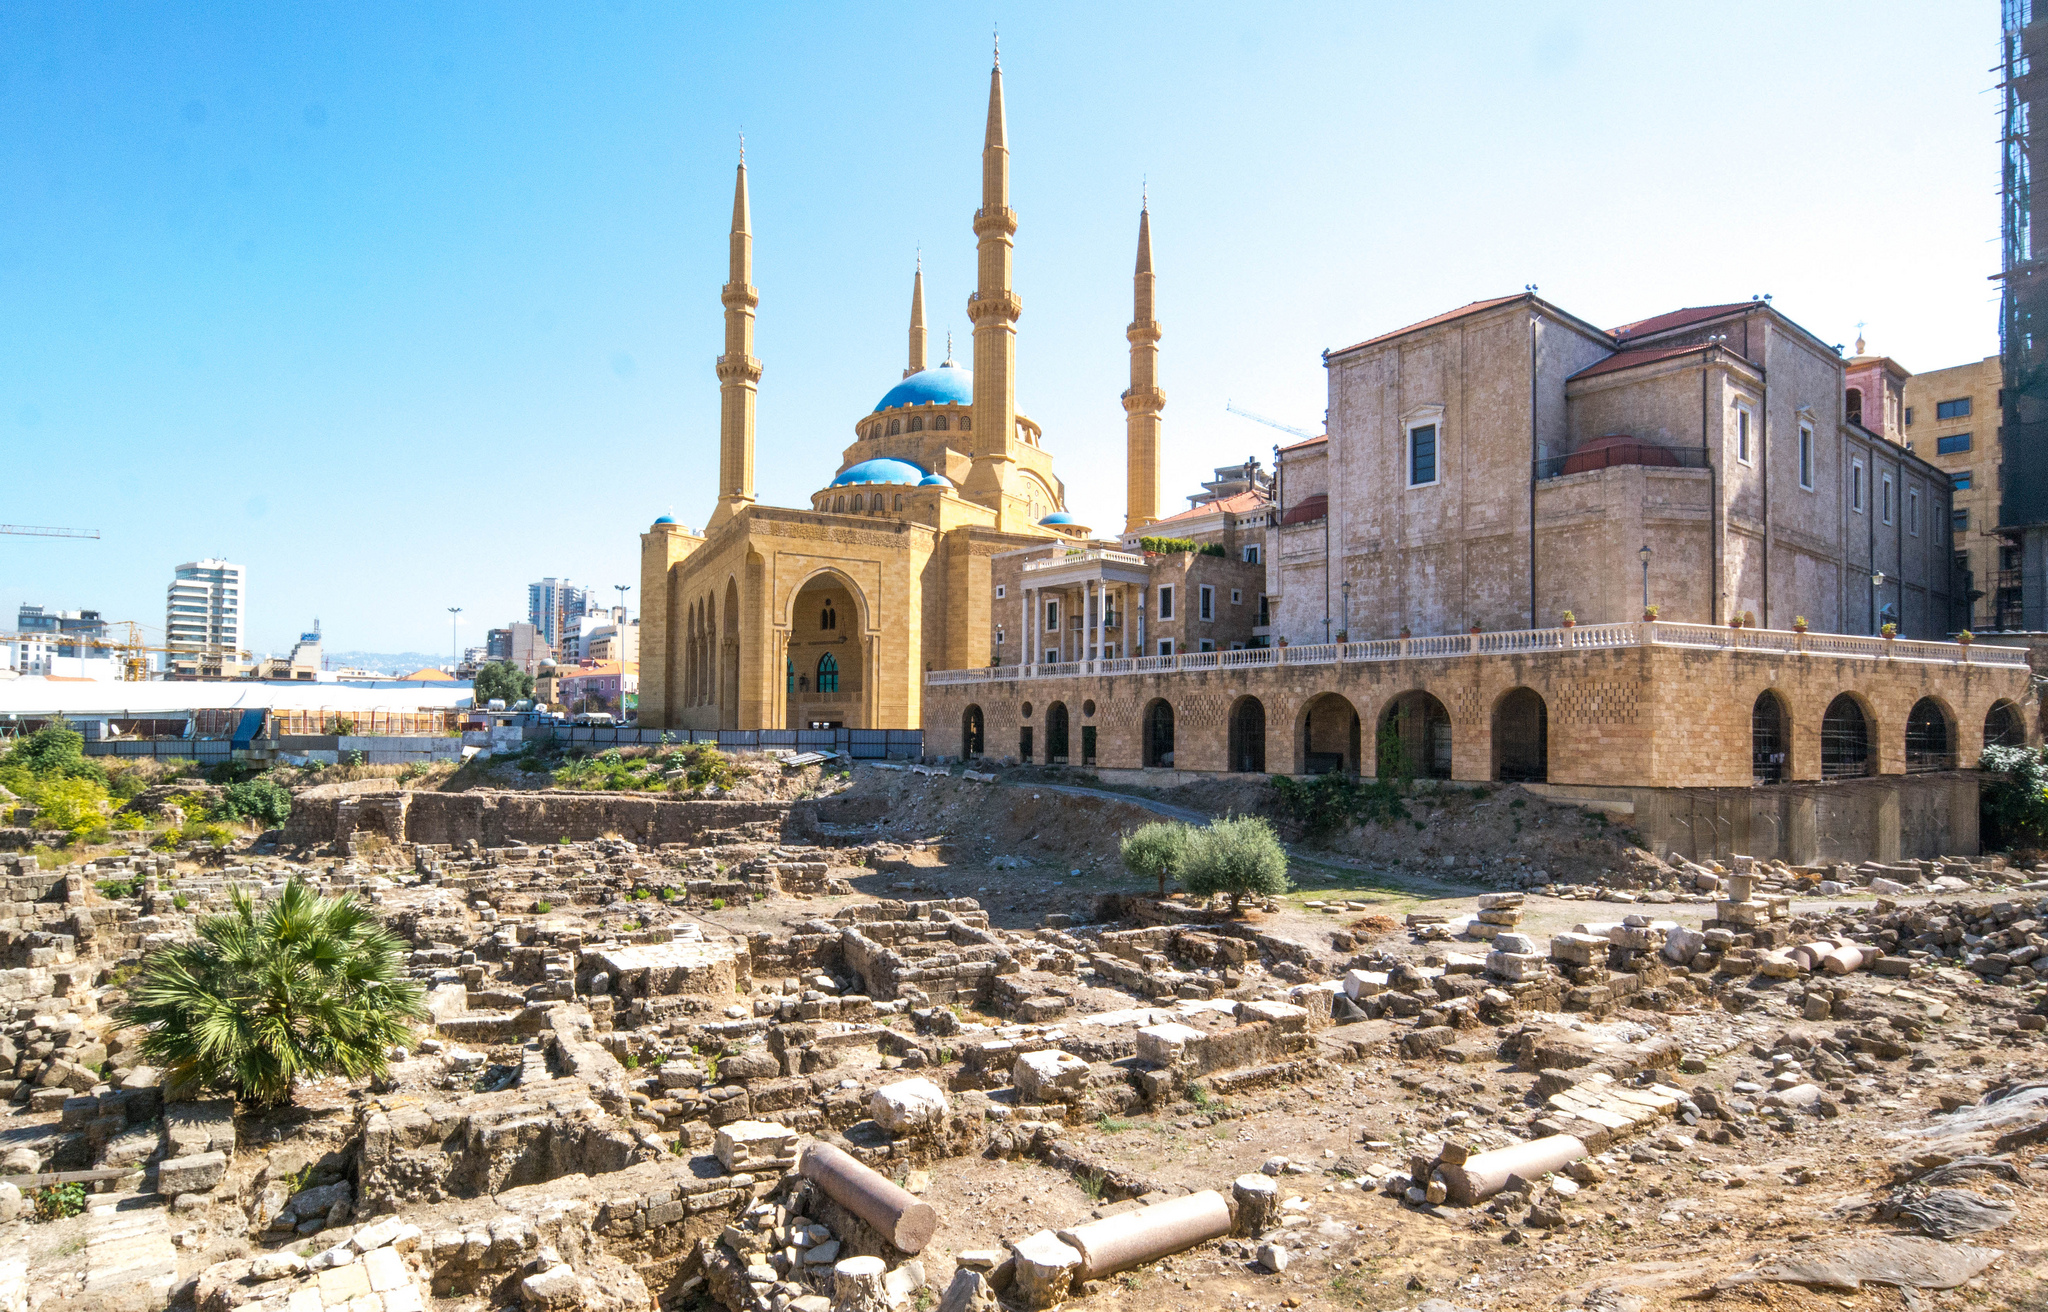 Beirut, another place renowned for it's incredible nightlife, is also on my 2019 list. Image credit:  Frode Bjorshol / Creative Commons